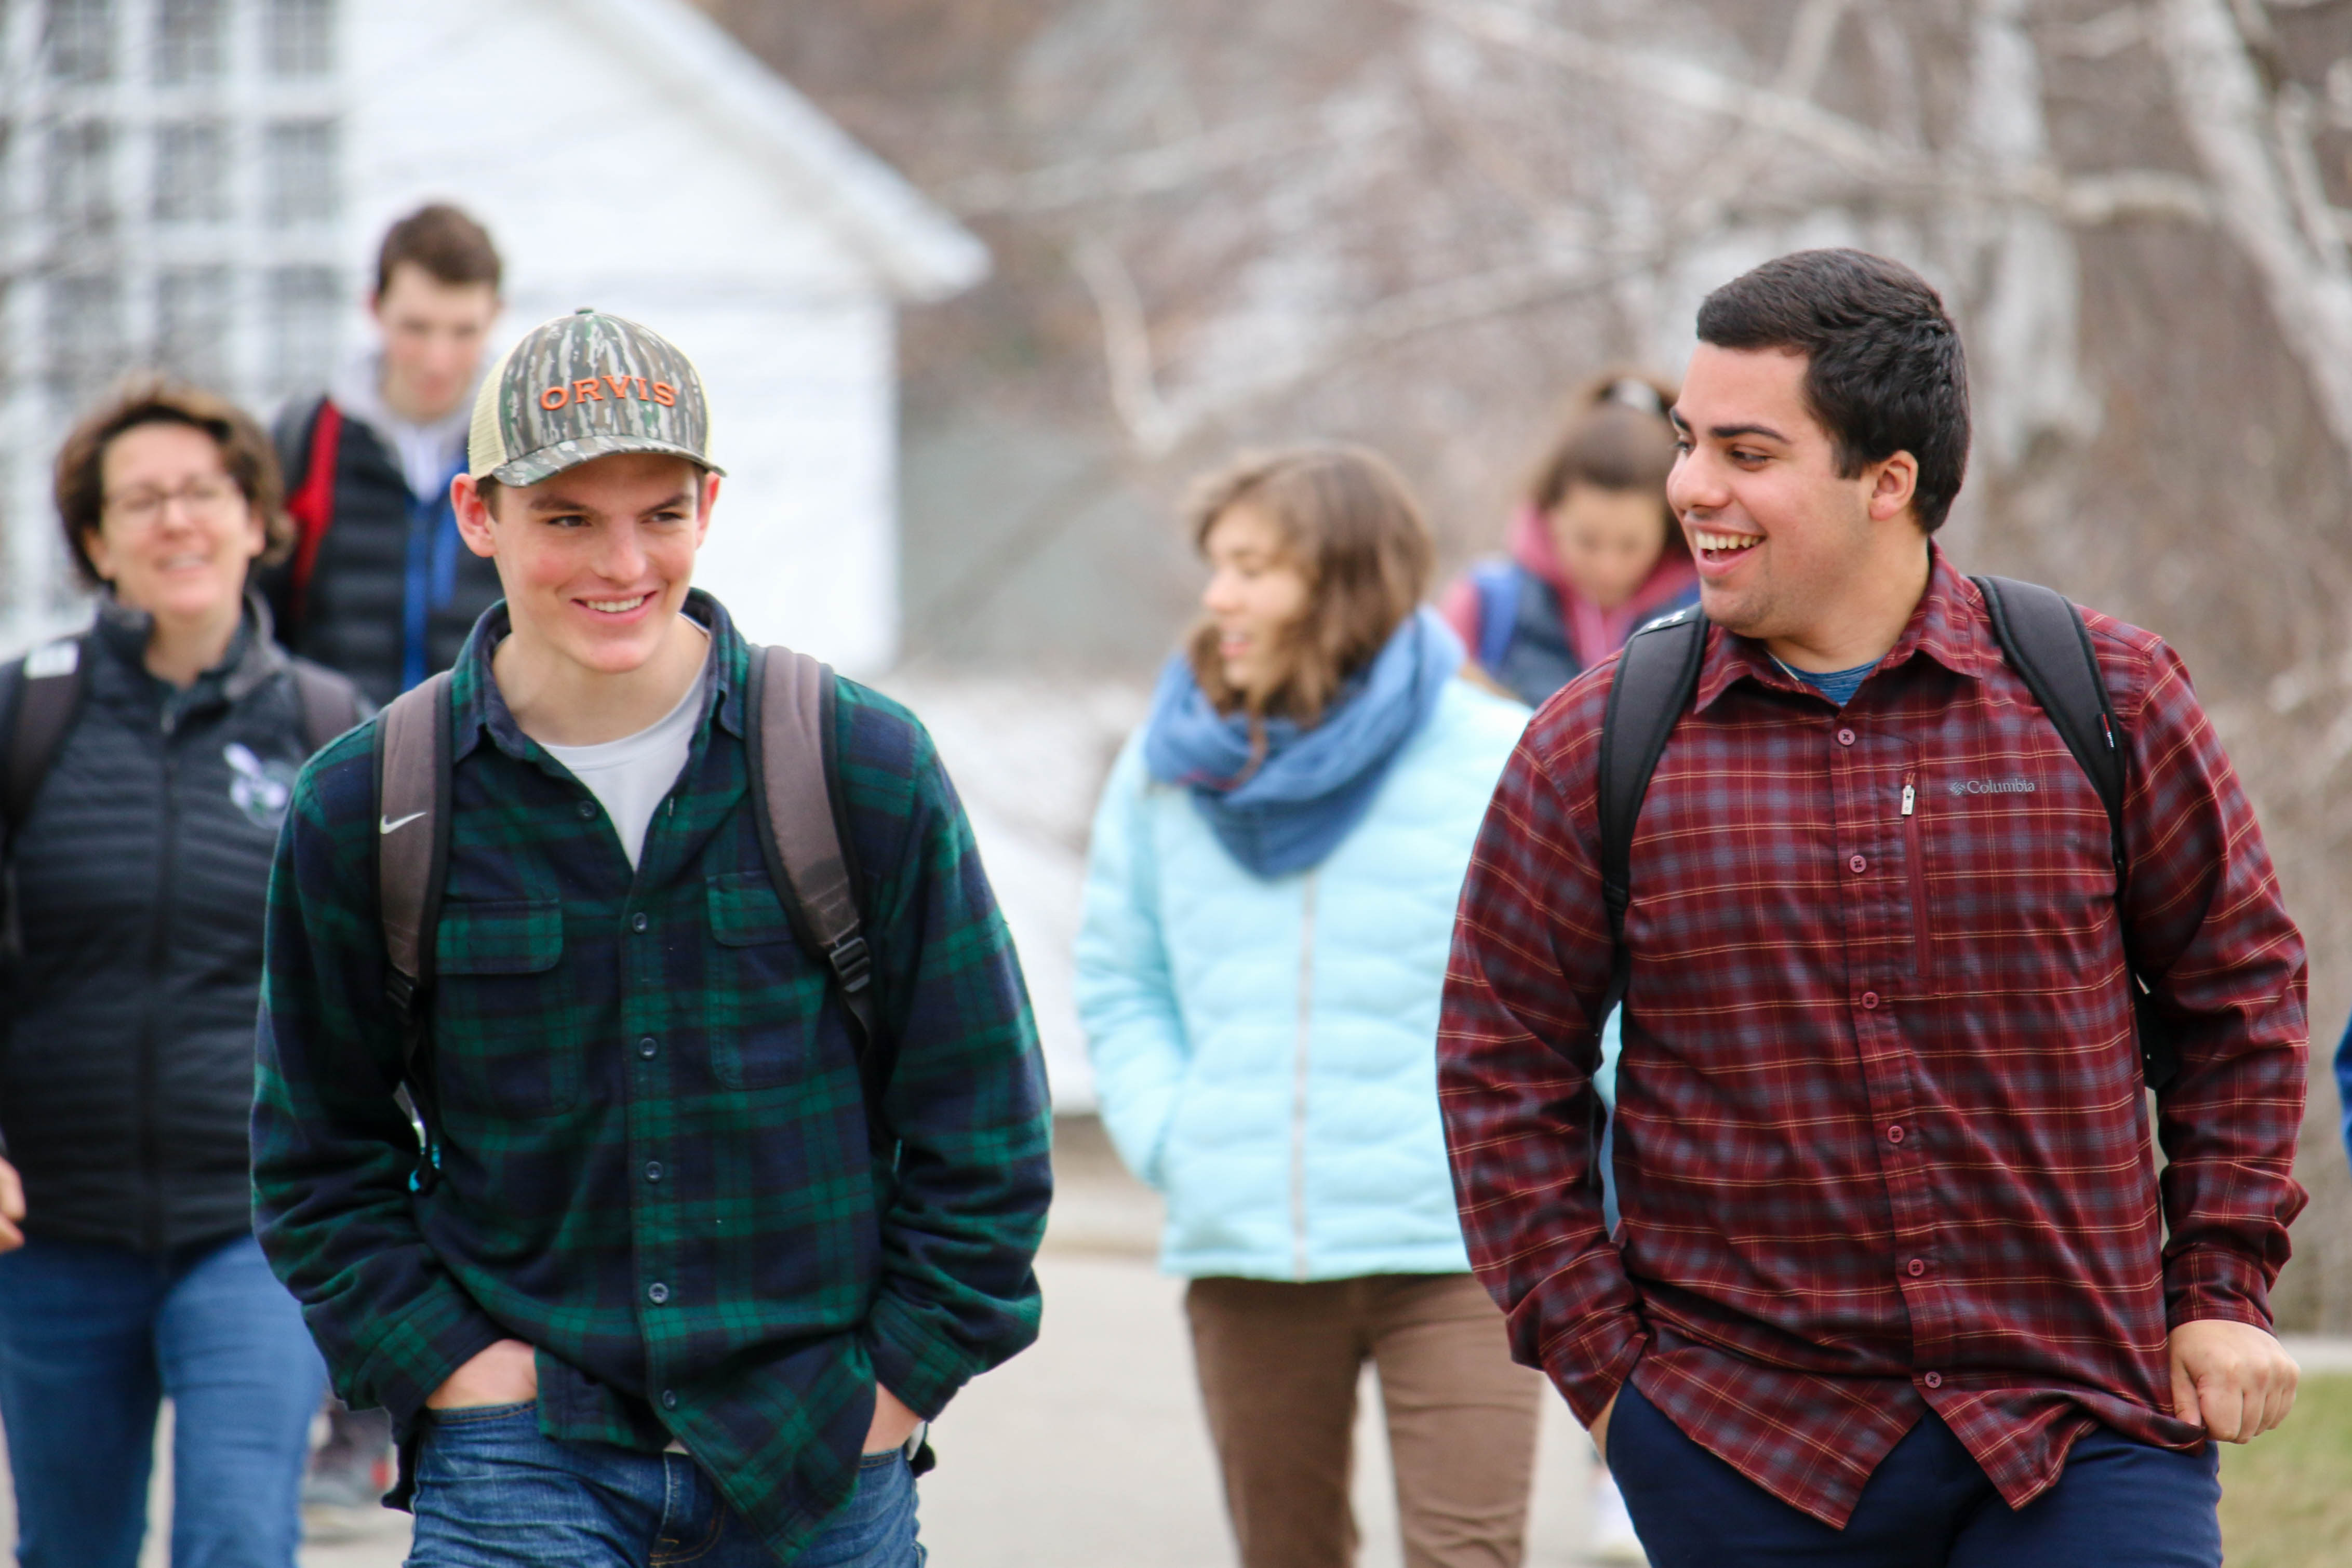 Proctor Academy Boarding School Admissions